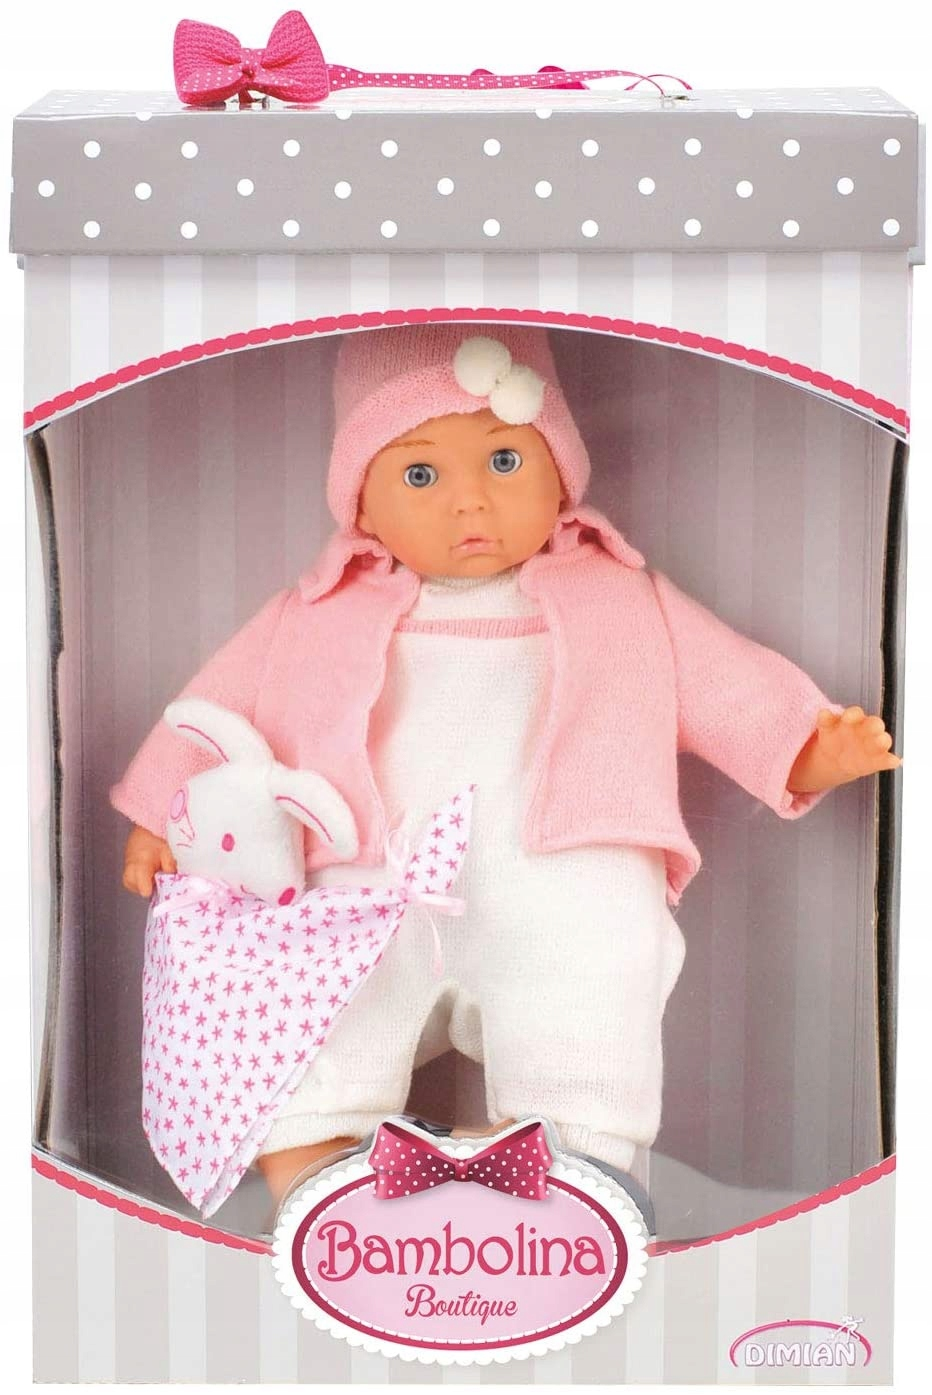 SMILY PLAY BAMBOLINA Boutique Doll Baby